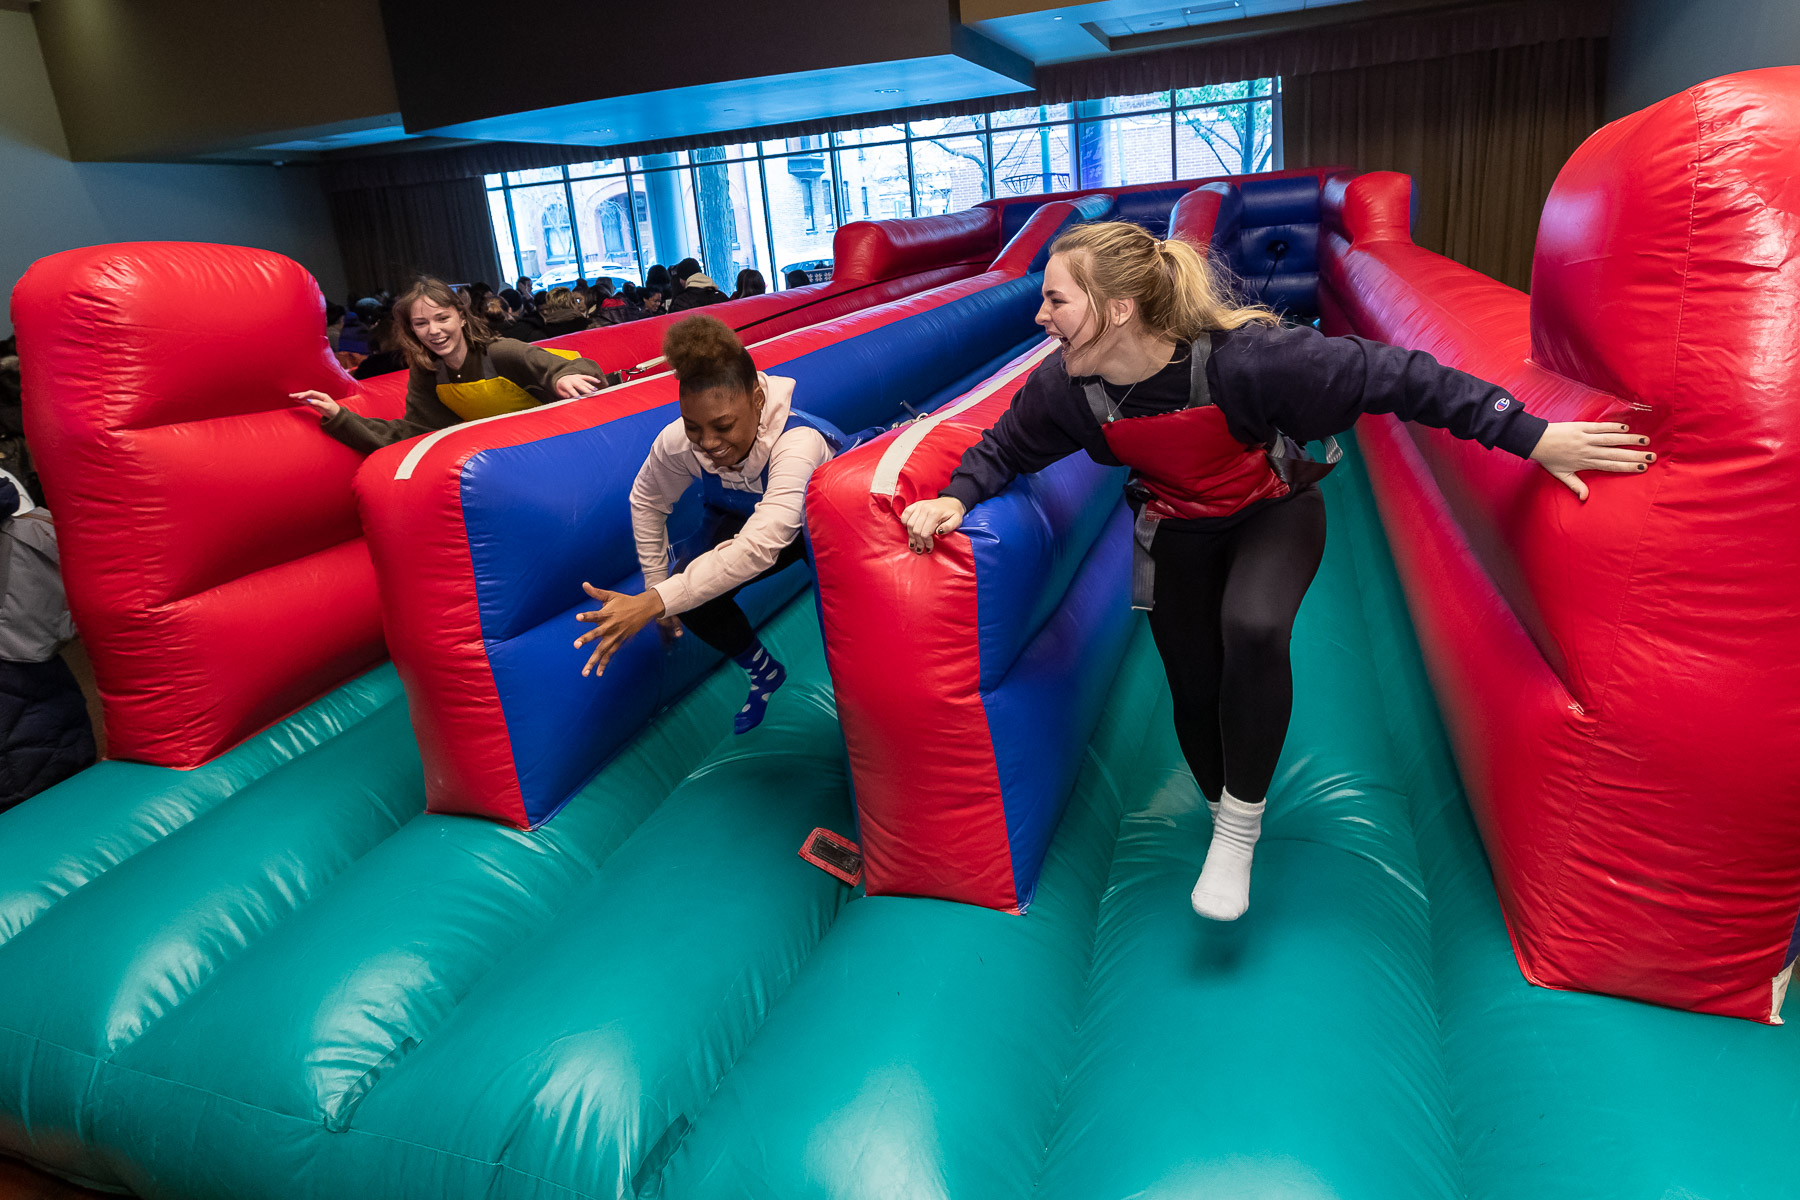 Students attempt to run against tethered harnesses in an inflatable bounce attraction in the Student Center. (DePaul University/Jeff Carrion)